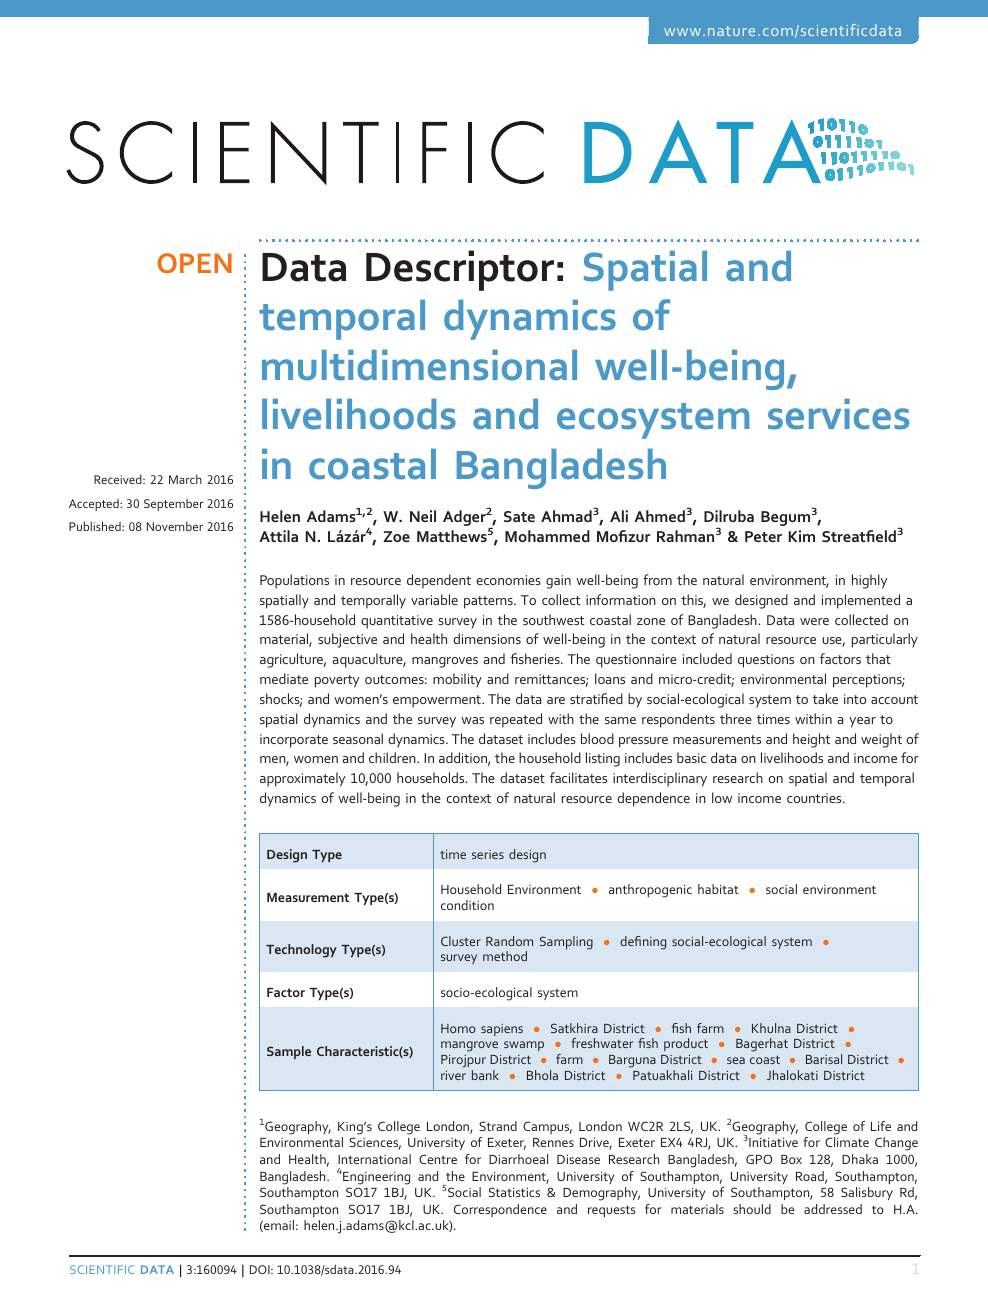 Spatial and temporal dynamics of multidimensional well-being